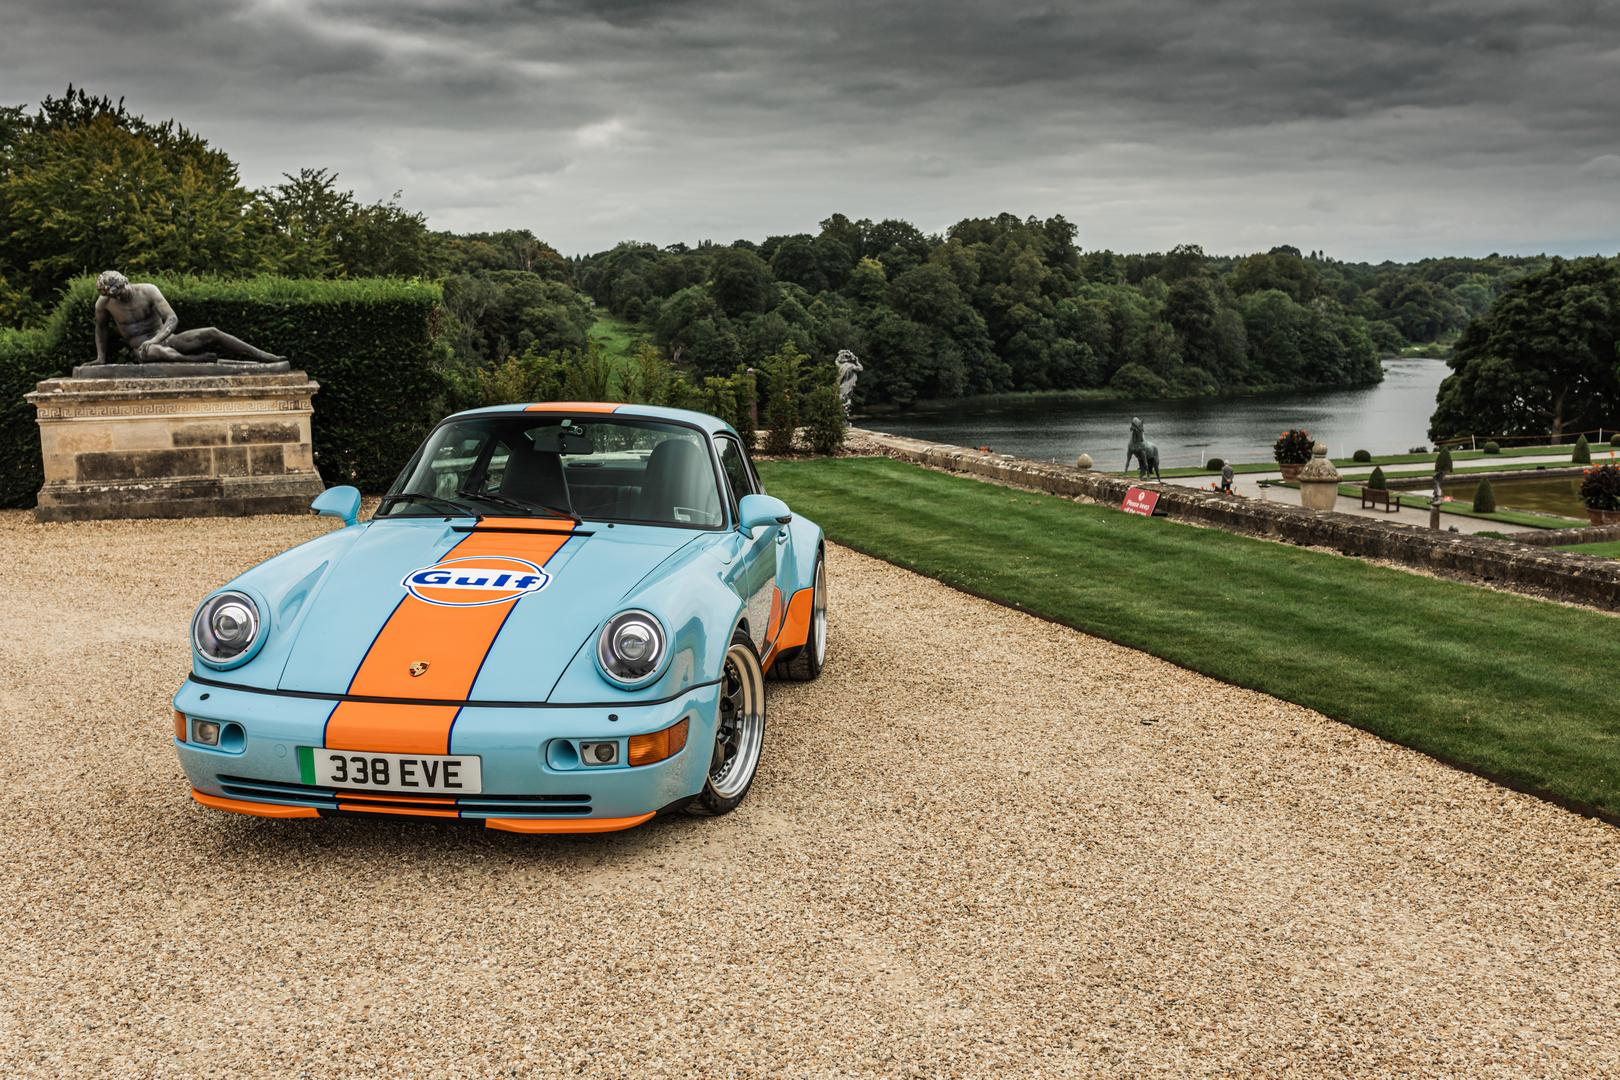 Gulf Porsche 964 Ditches Aircooled Engine for a Full Electric Powertrain